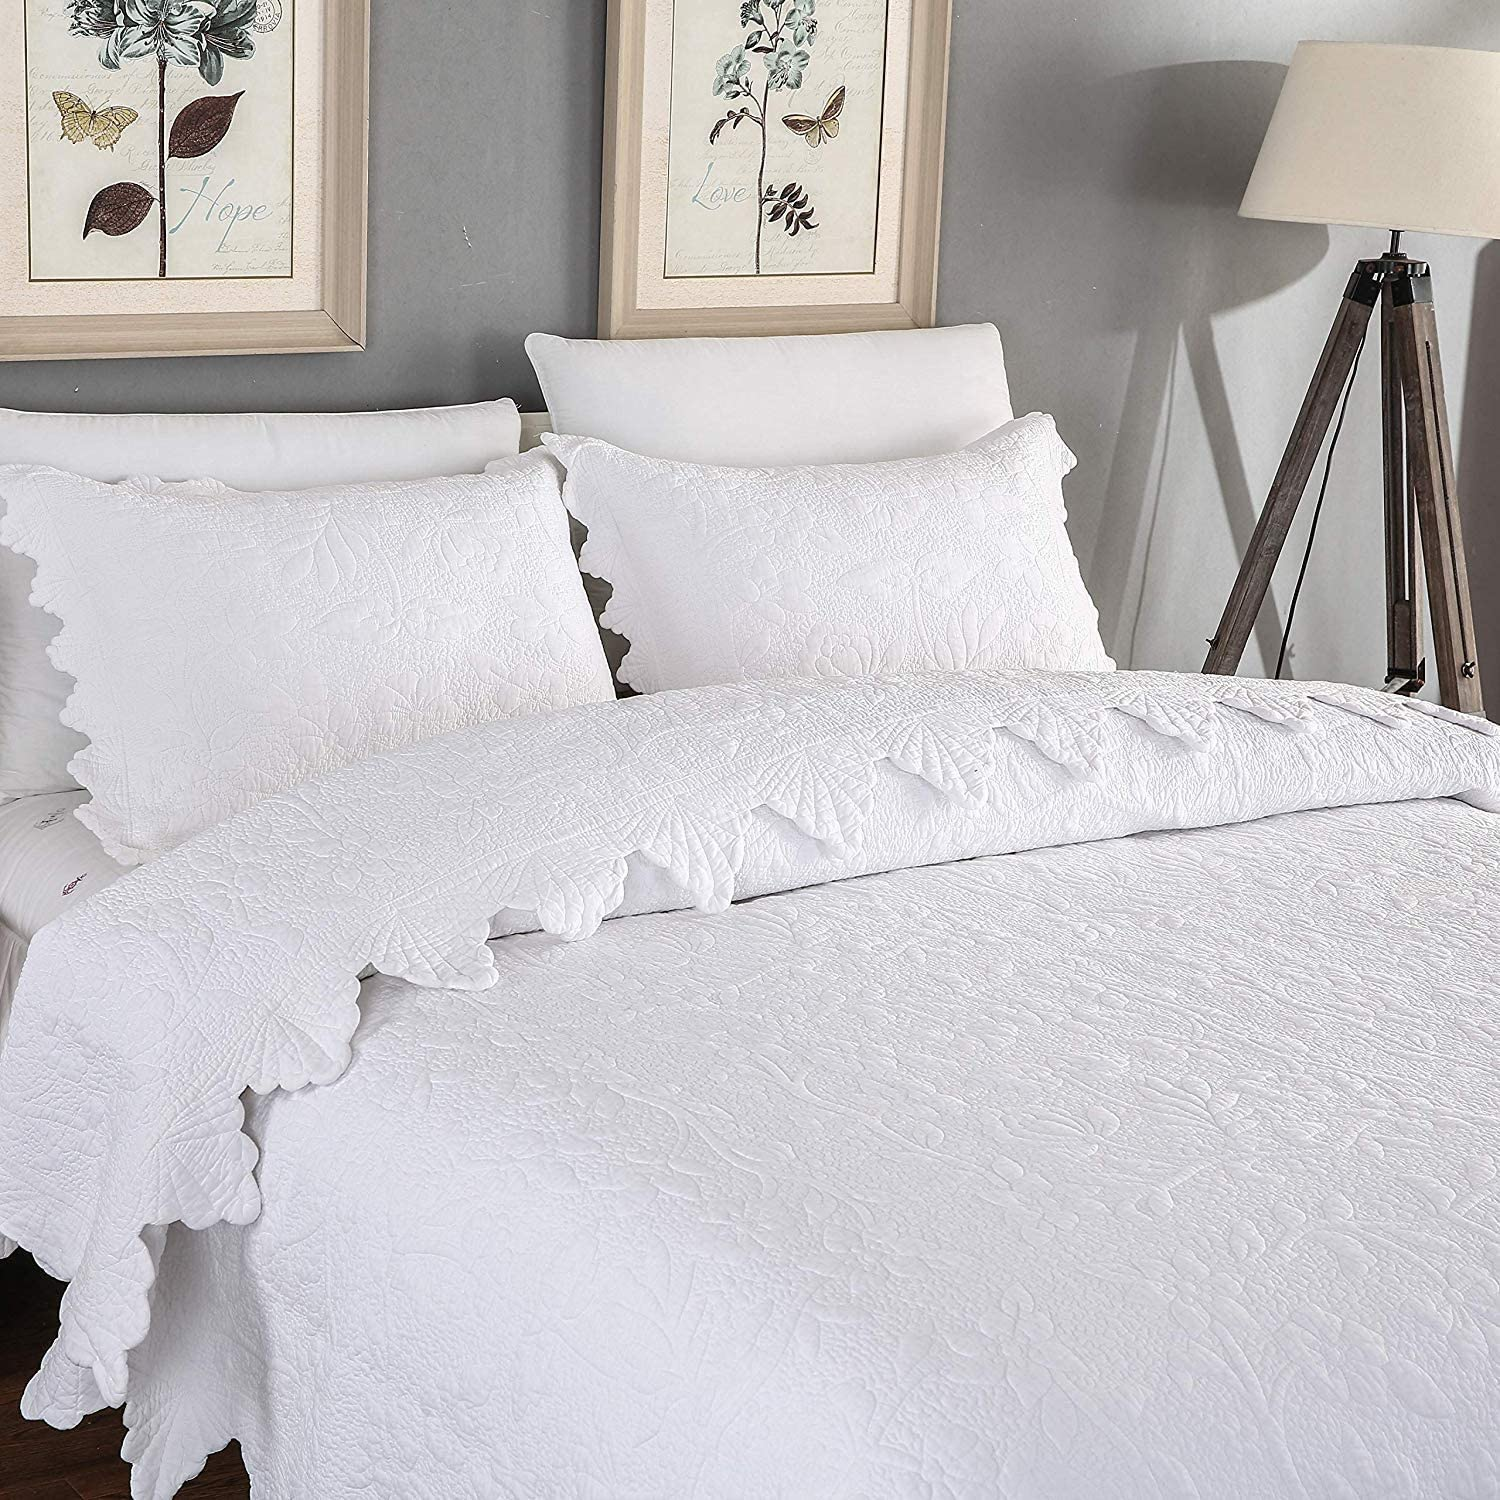 Brandream White Quilts Set King Size Farmhouse Bedding 100% Cotton Quilted Bedspreads(Quilt 98x106 with 4 Standard Size Pillow Shams)